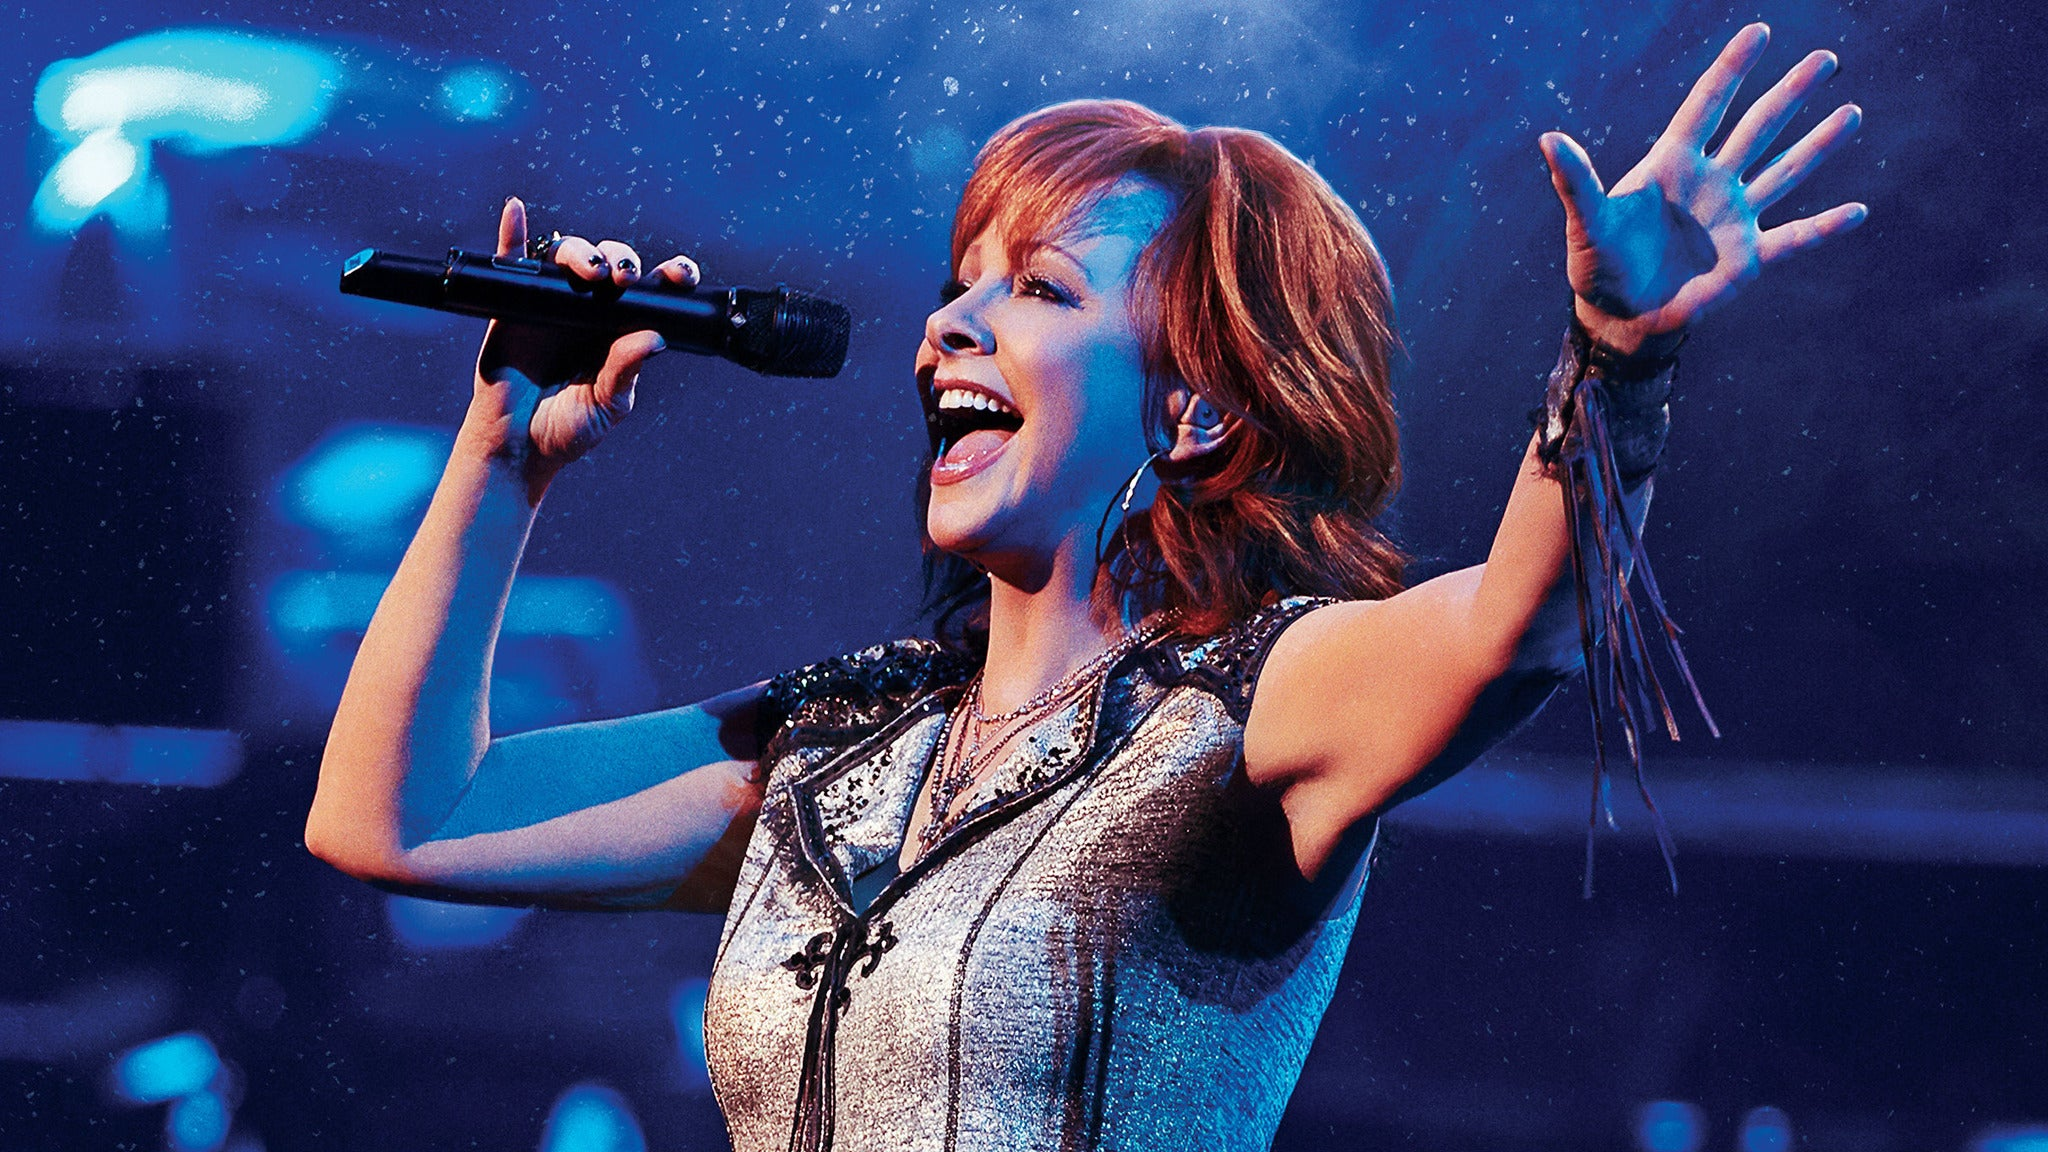 Reba w/ Gone West ft. Colbie Caillat, Home Free, & Rachel Wammack